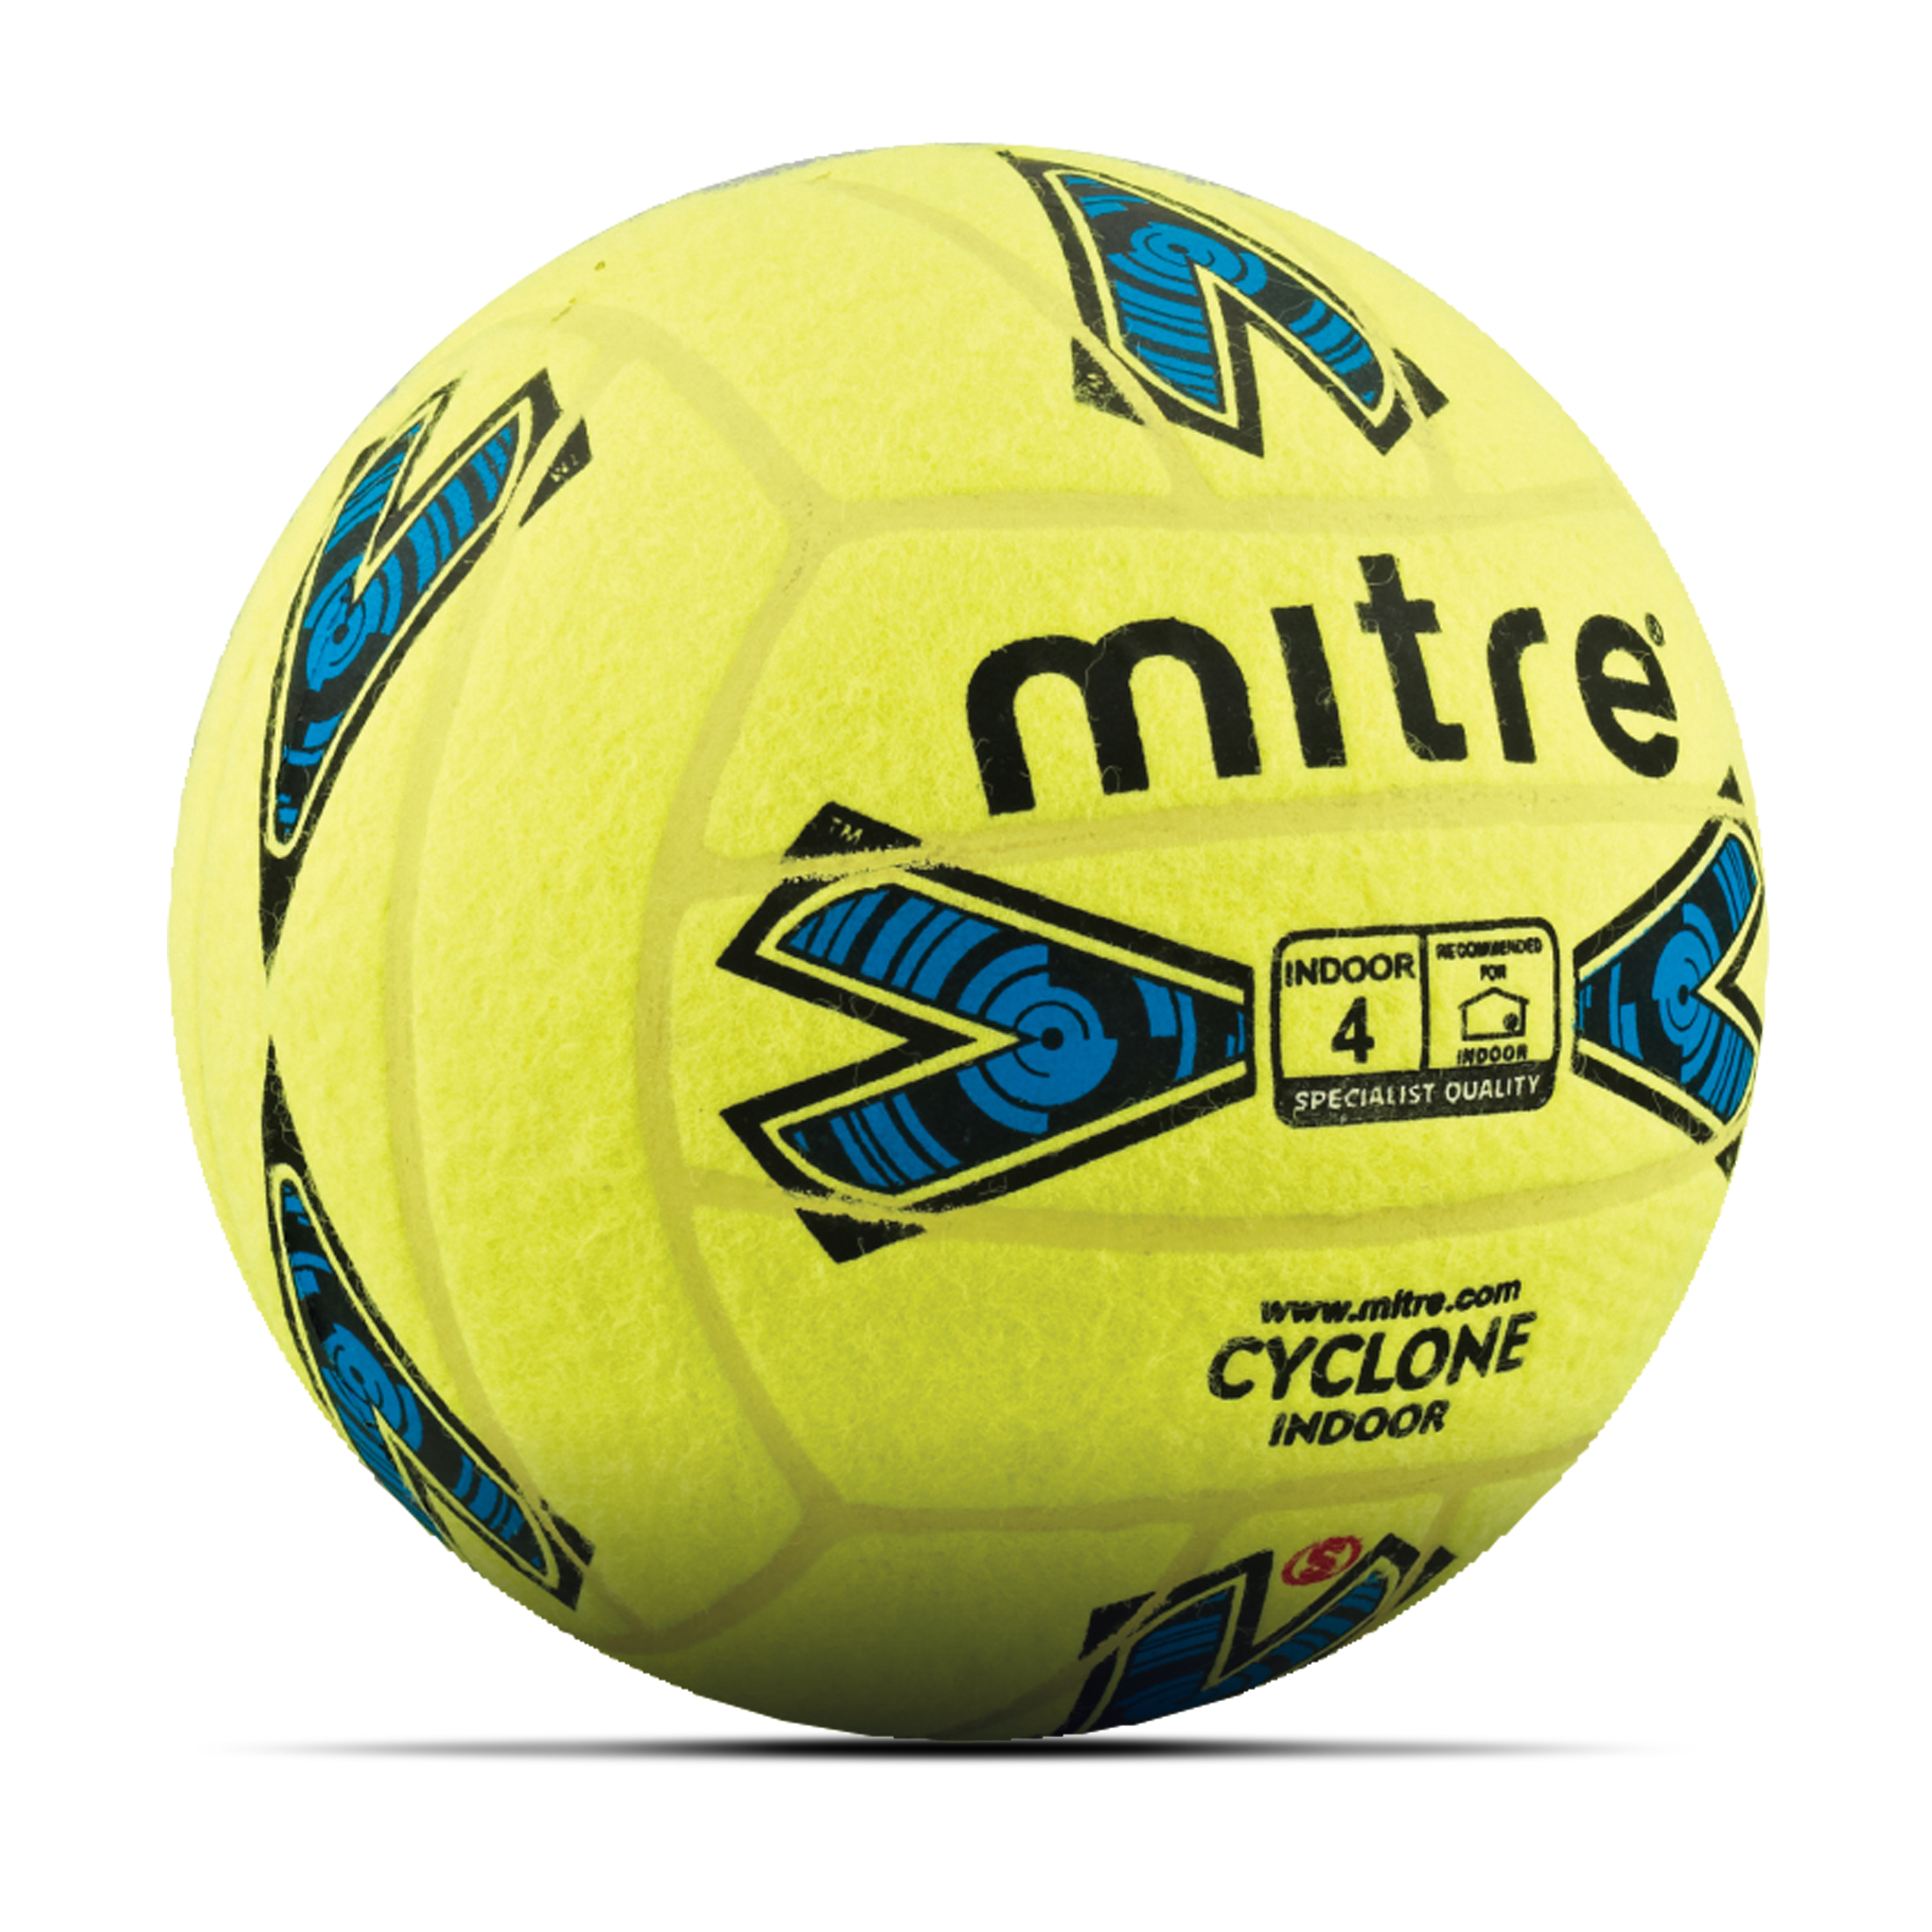 Mitre Cyclone Indoor Football - Yellow - Size 4